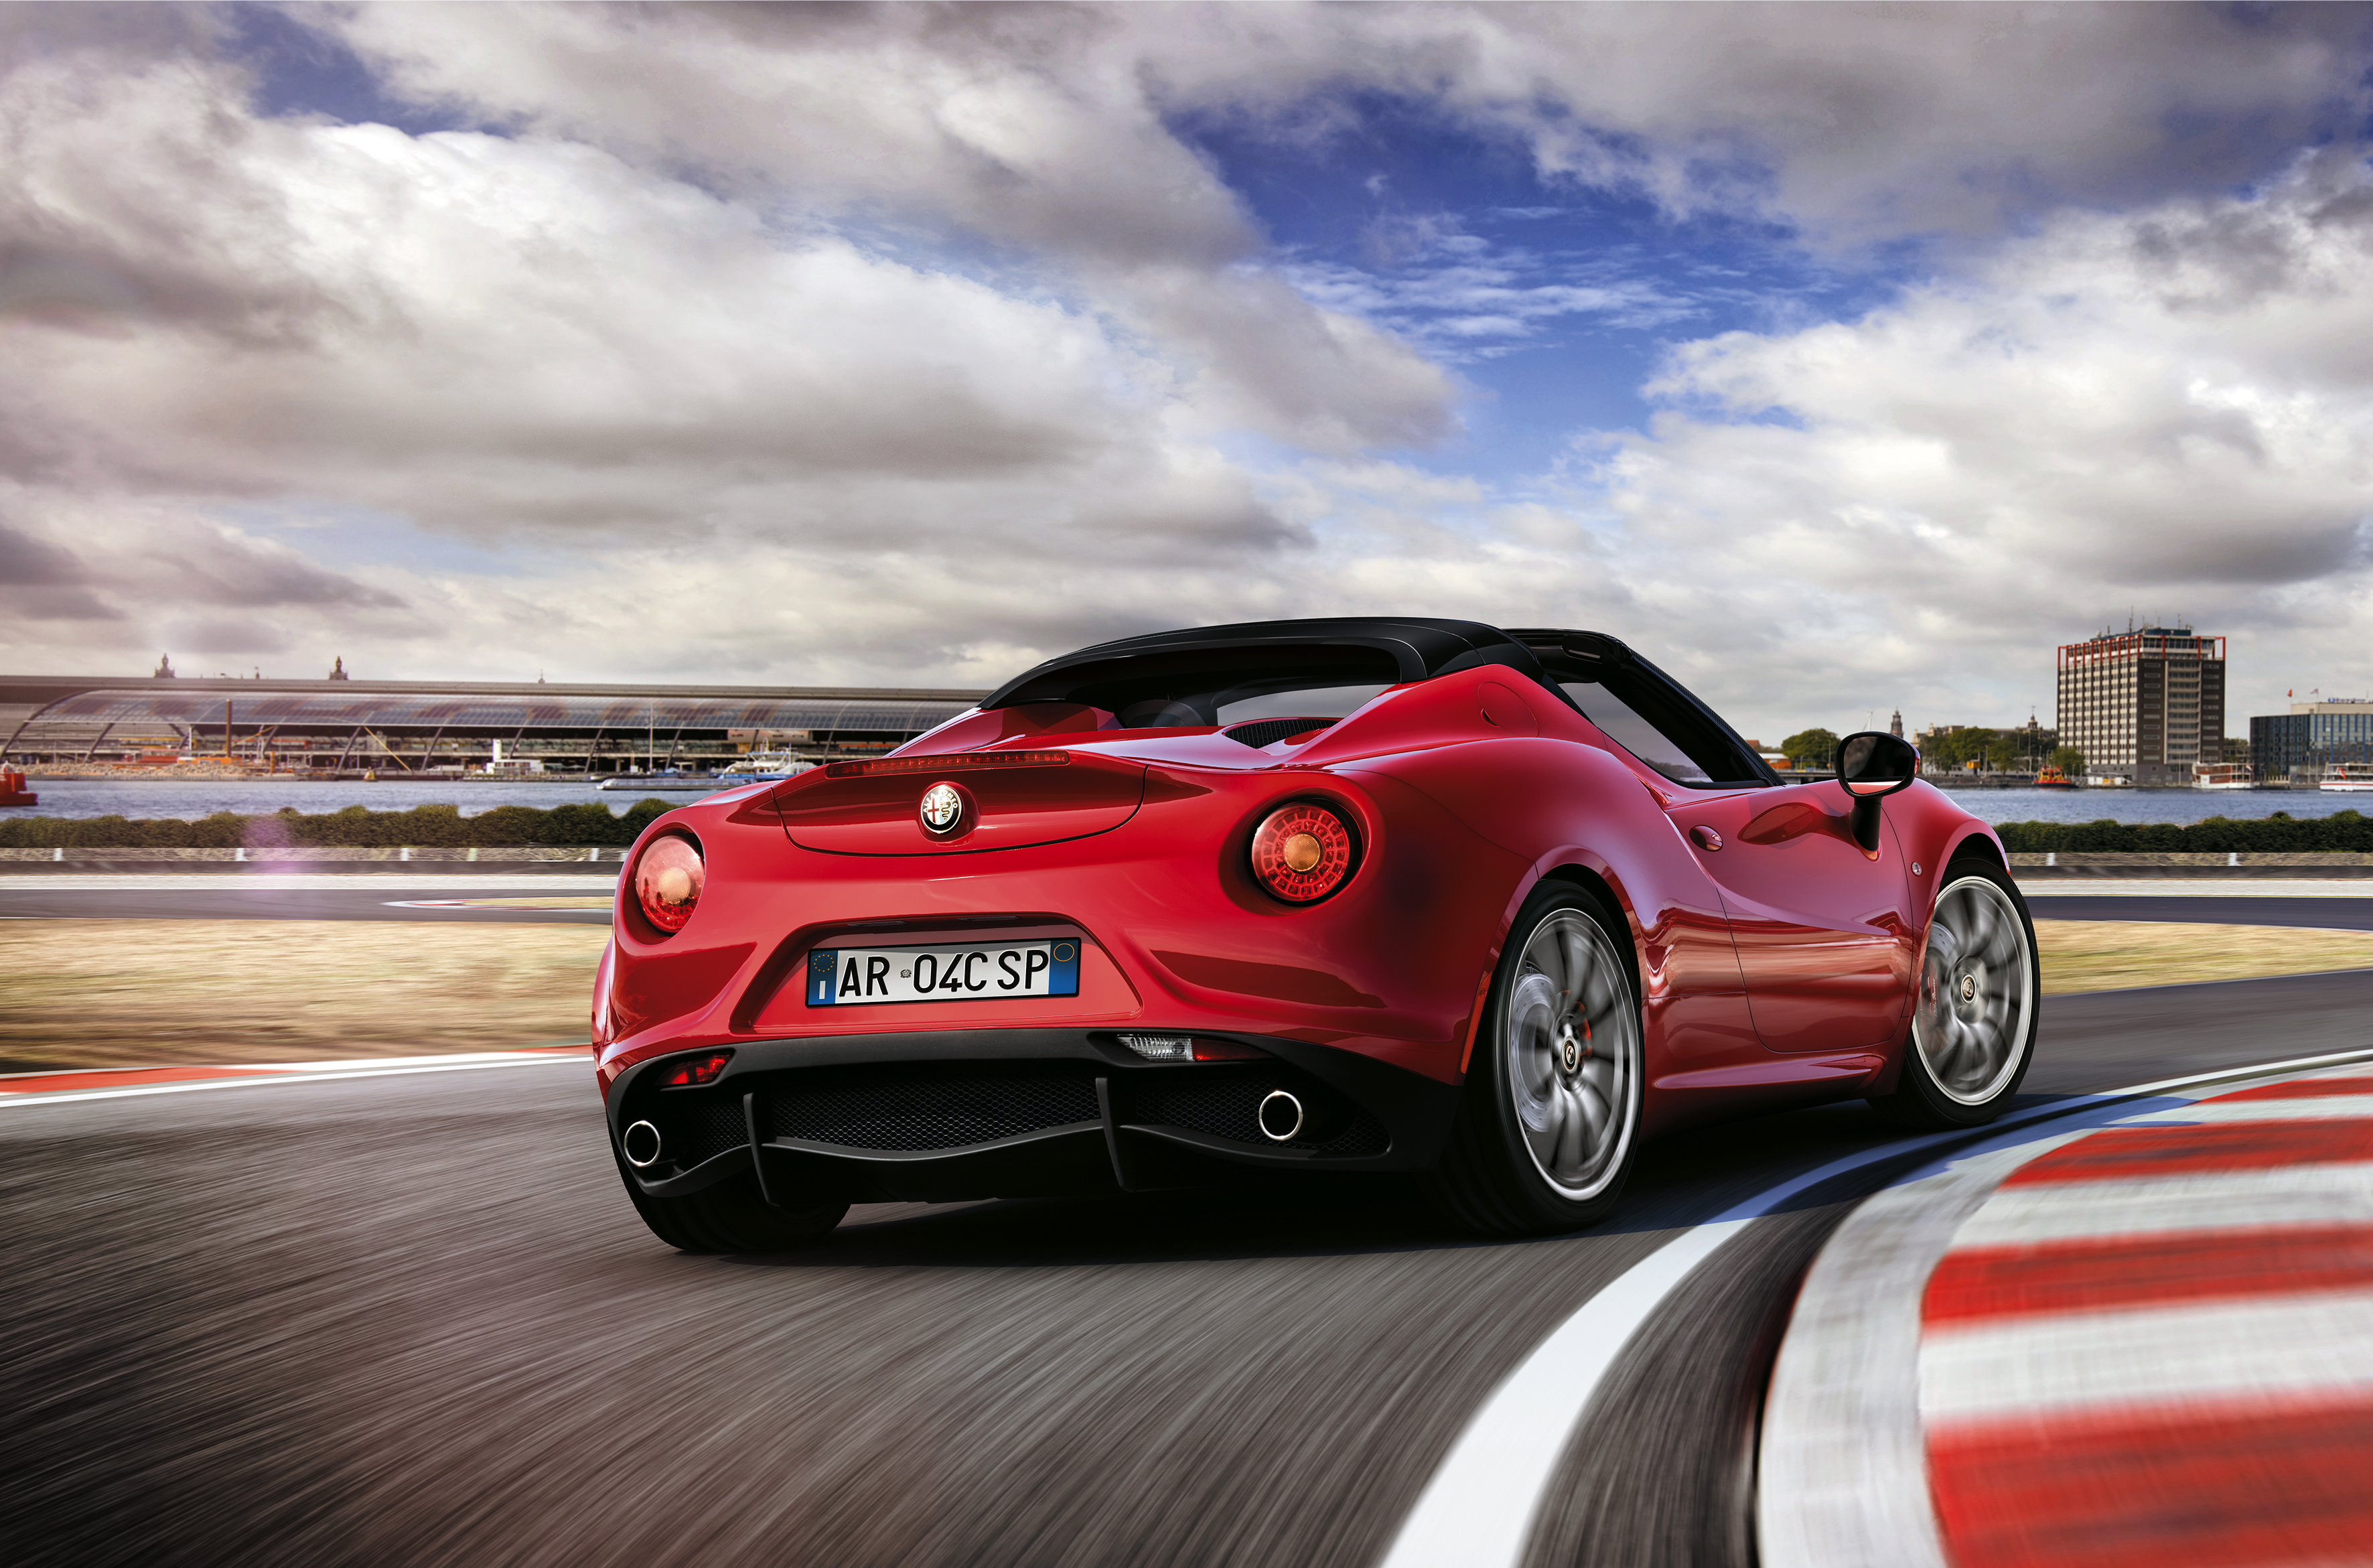 2015 Alfa Romeo 4C Spider photo - 3